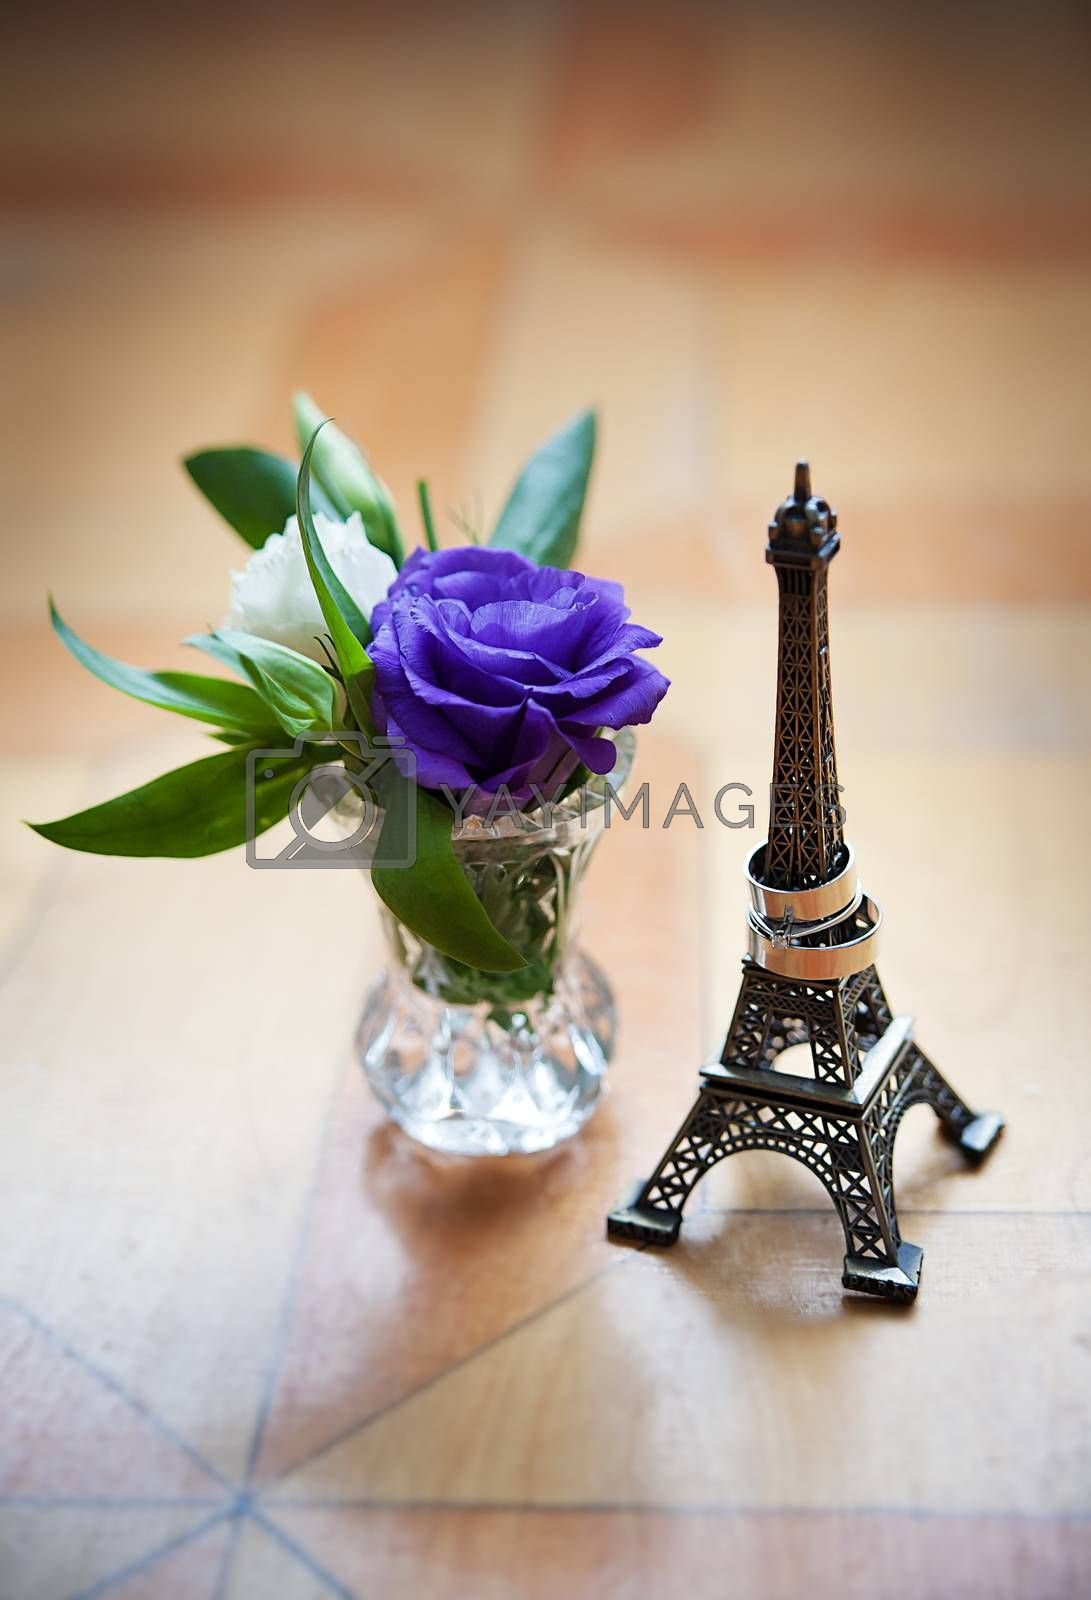 Royalty free image of statuette of Eiffel Tower and wedding rings by sfinks